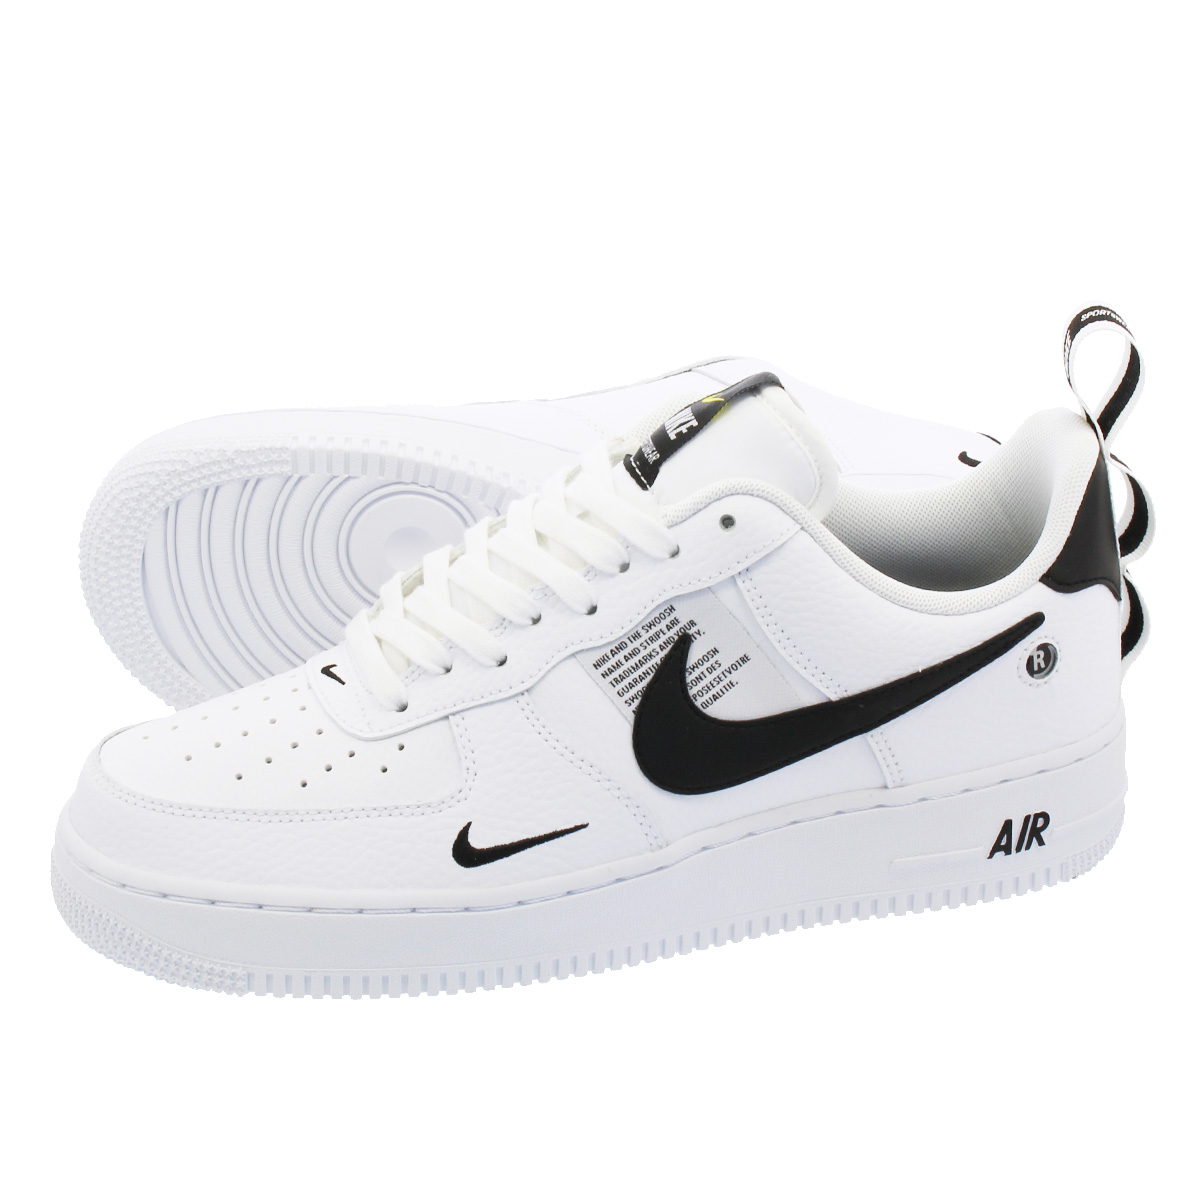 NIKE AIR FORCE 1 '07 LV8 UTILITY Nike air force 1 '07 LV8 utility  WHITE/WHITE/BLACK/TOUR YELLOW aj7747-100